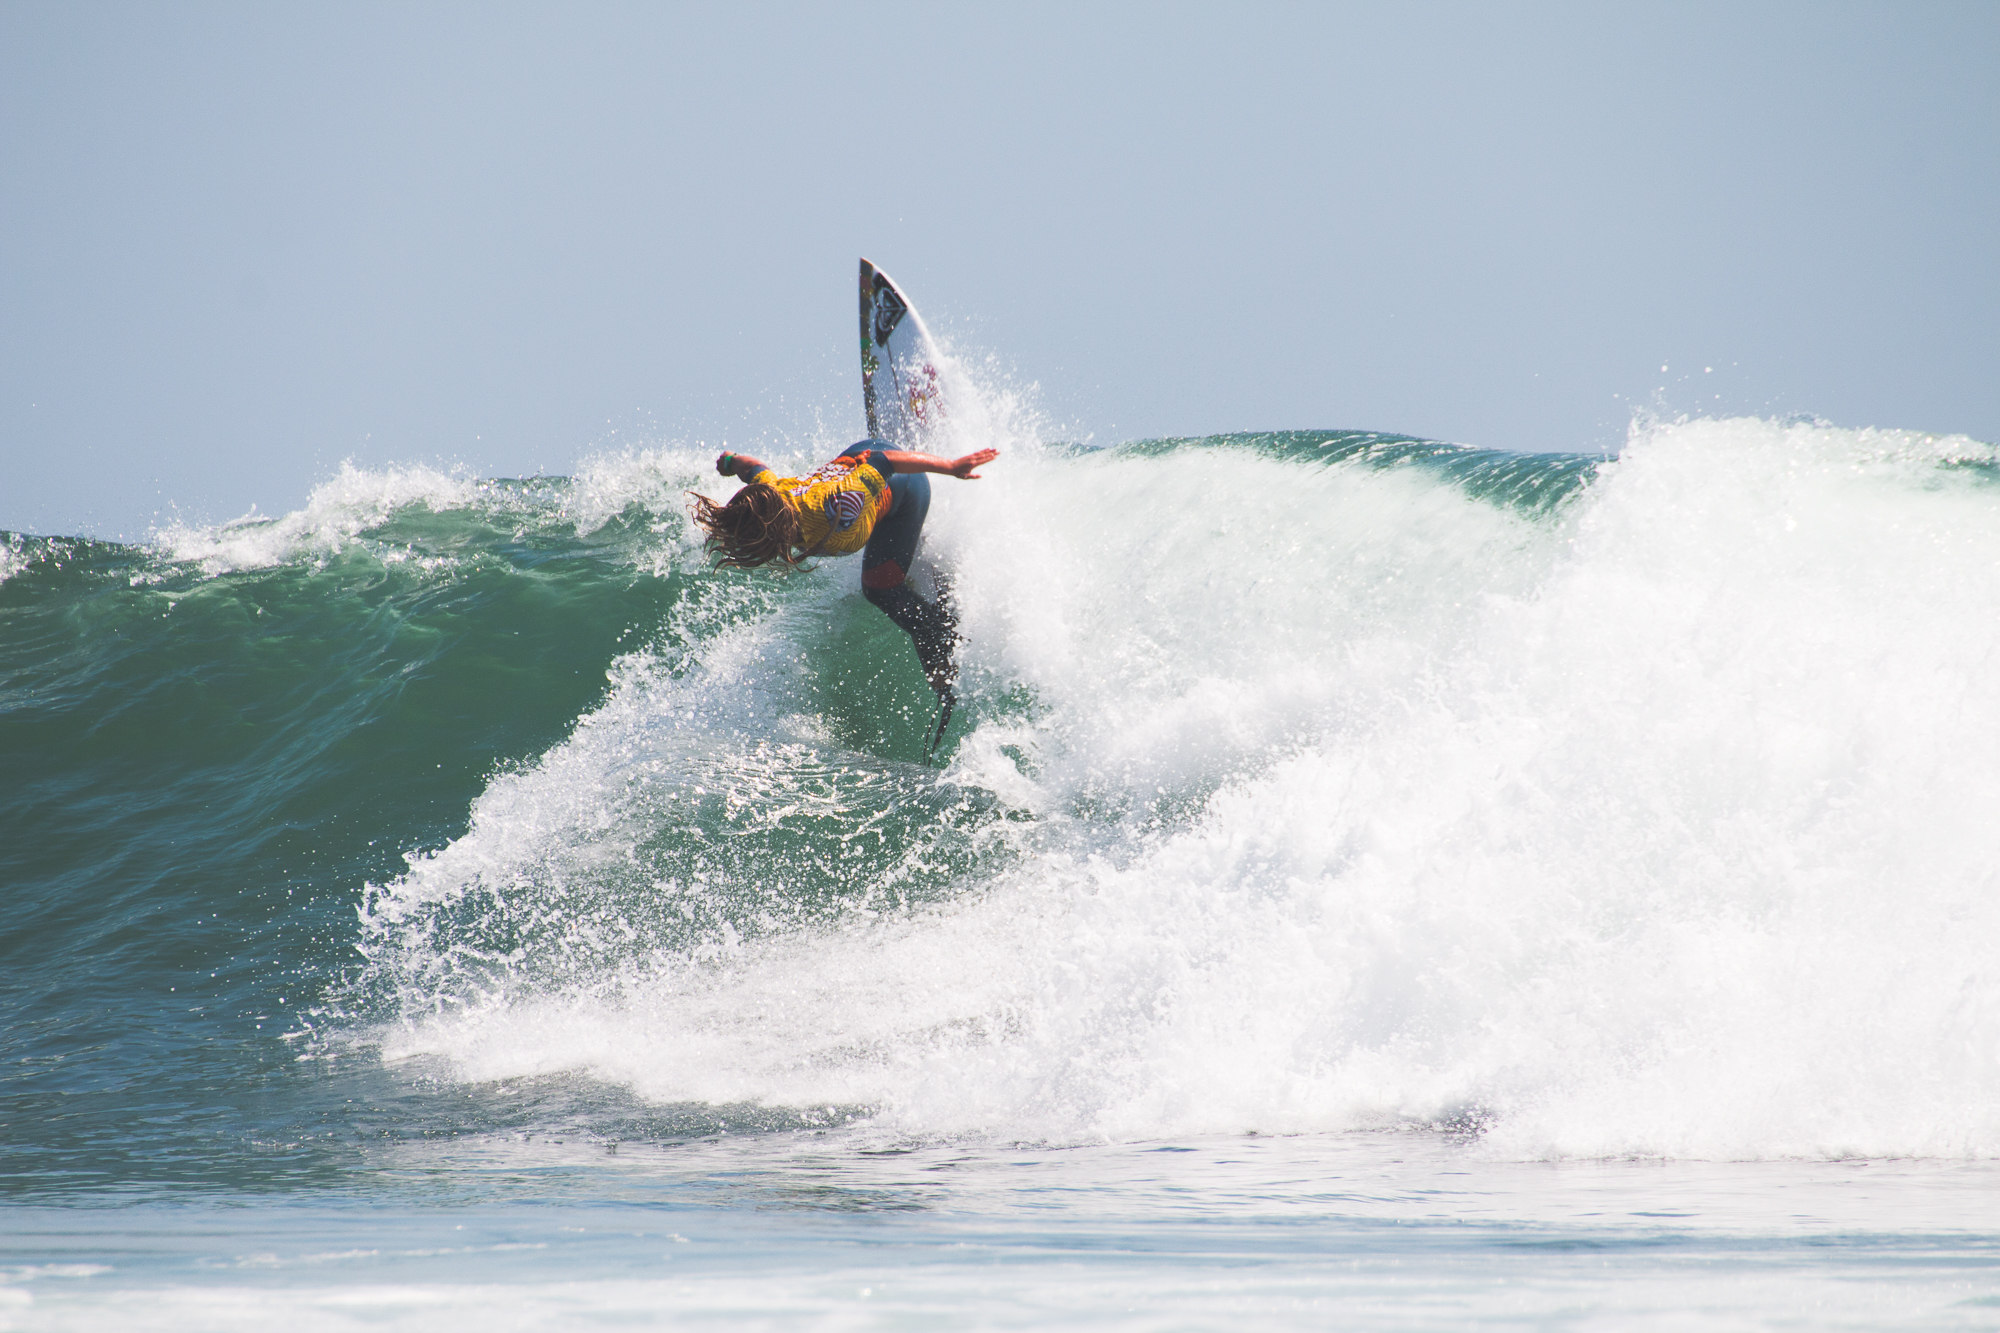 Caroline Marks took home two more titles at this years USA Surfing Championships. She is now at 17 total world titles.